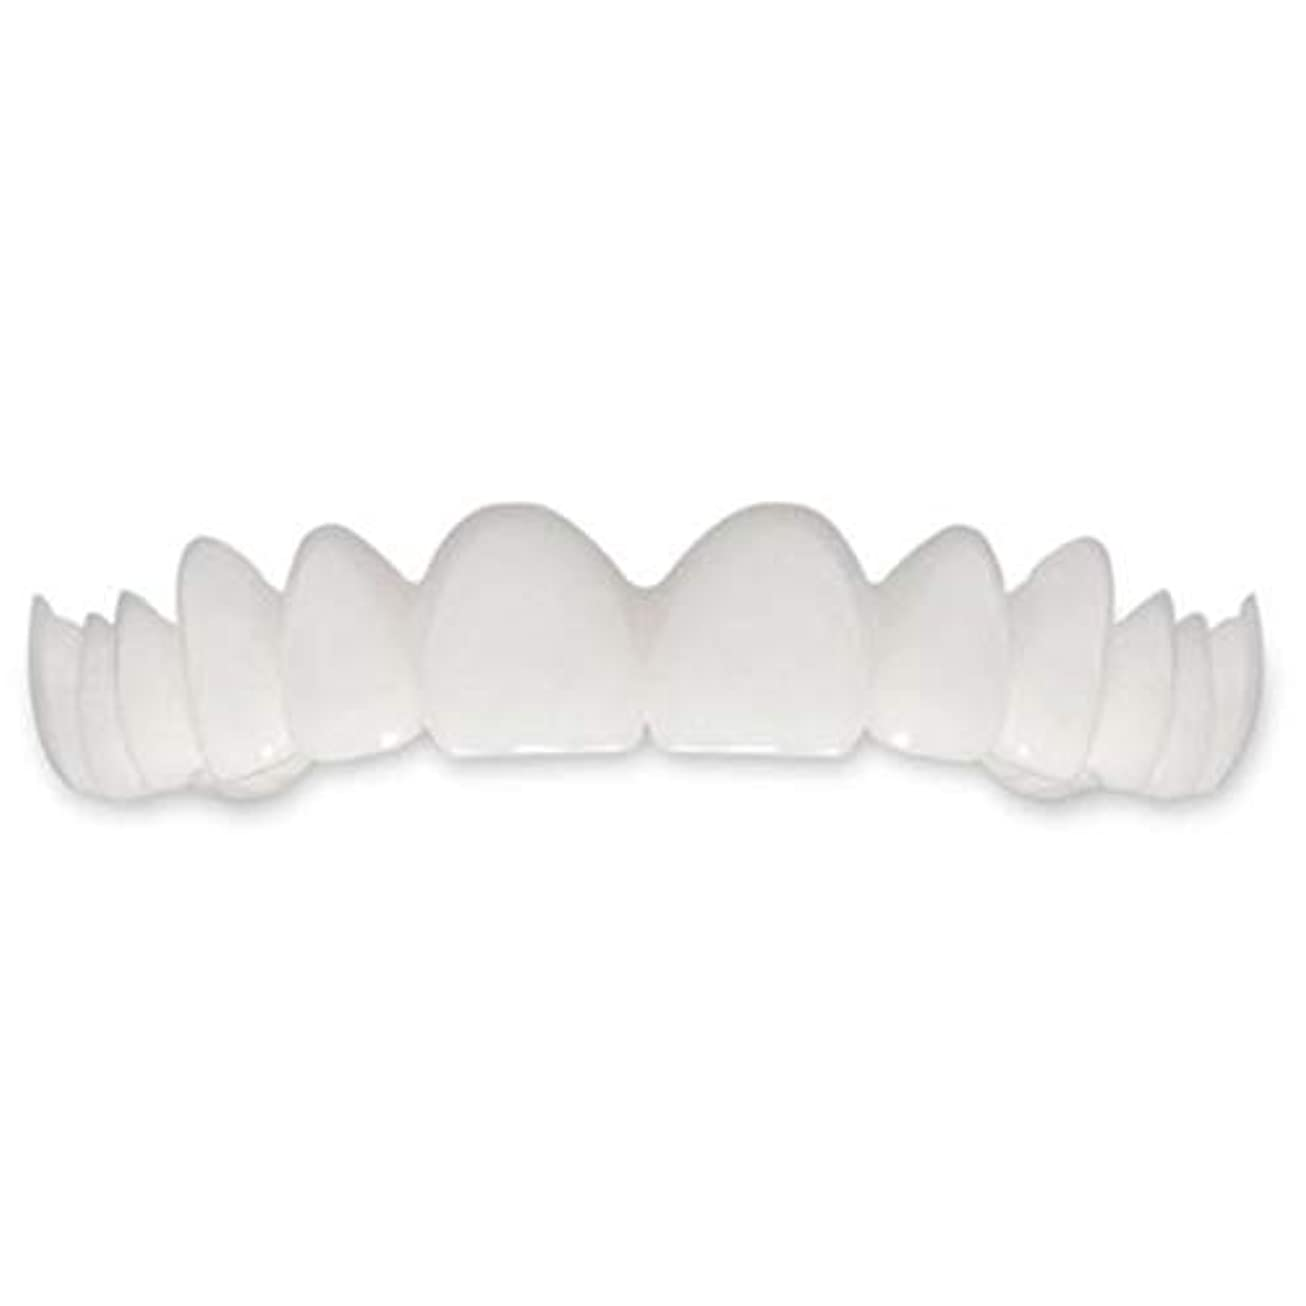 推定聖職者好きTooth Instant Perfect Smile Flex Teeth Whitening Smile False Teeth Cover-ホワイト